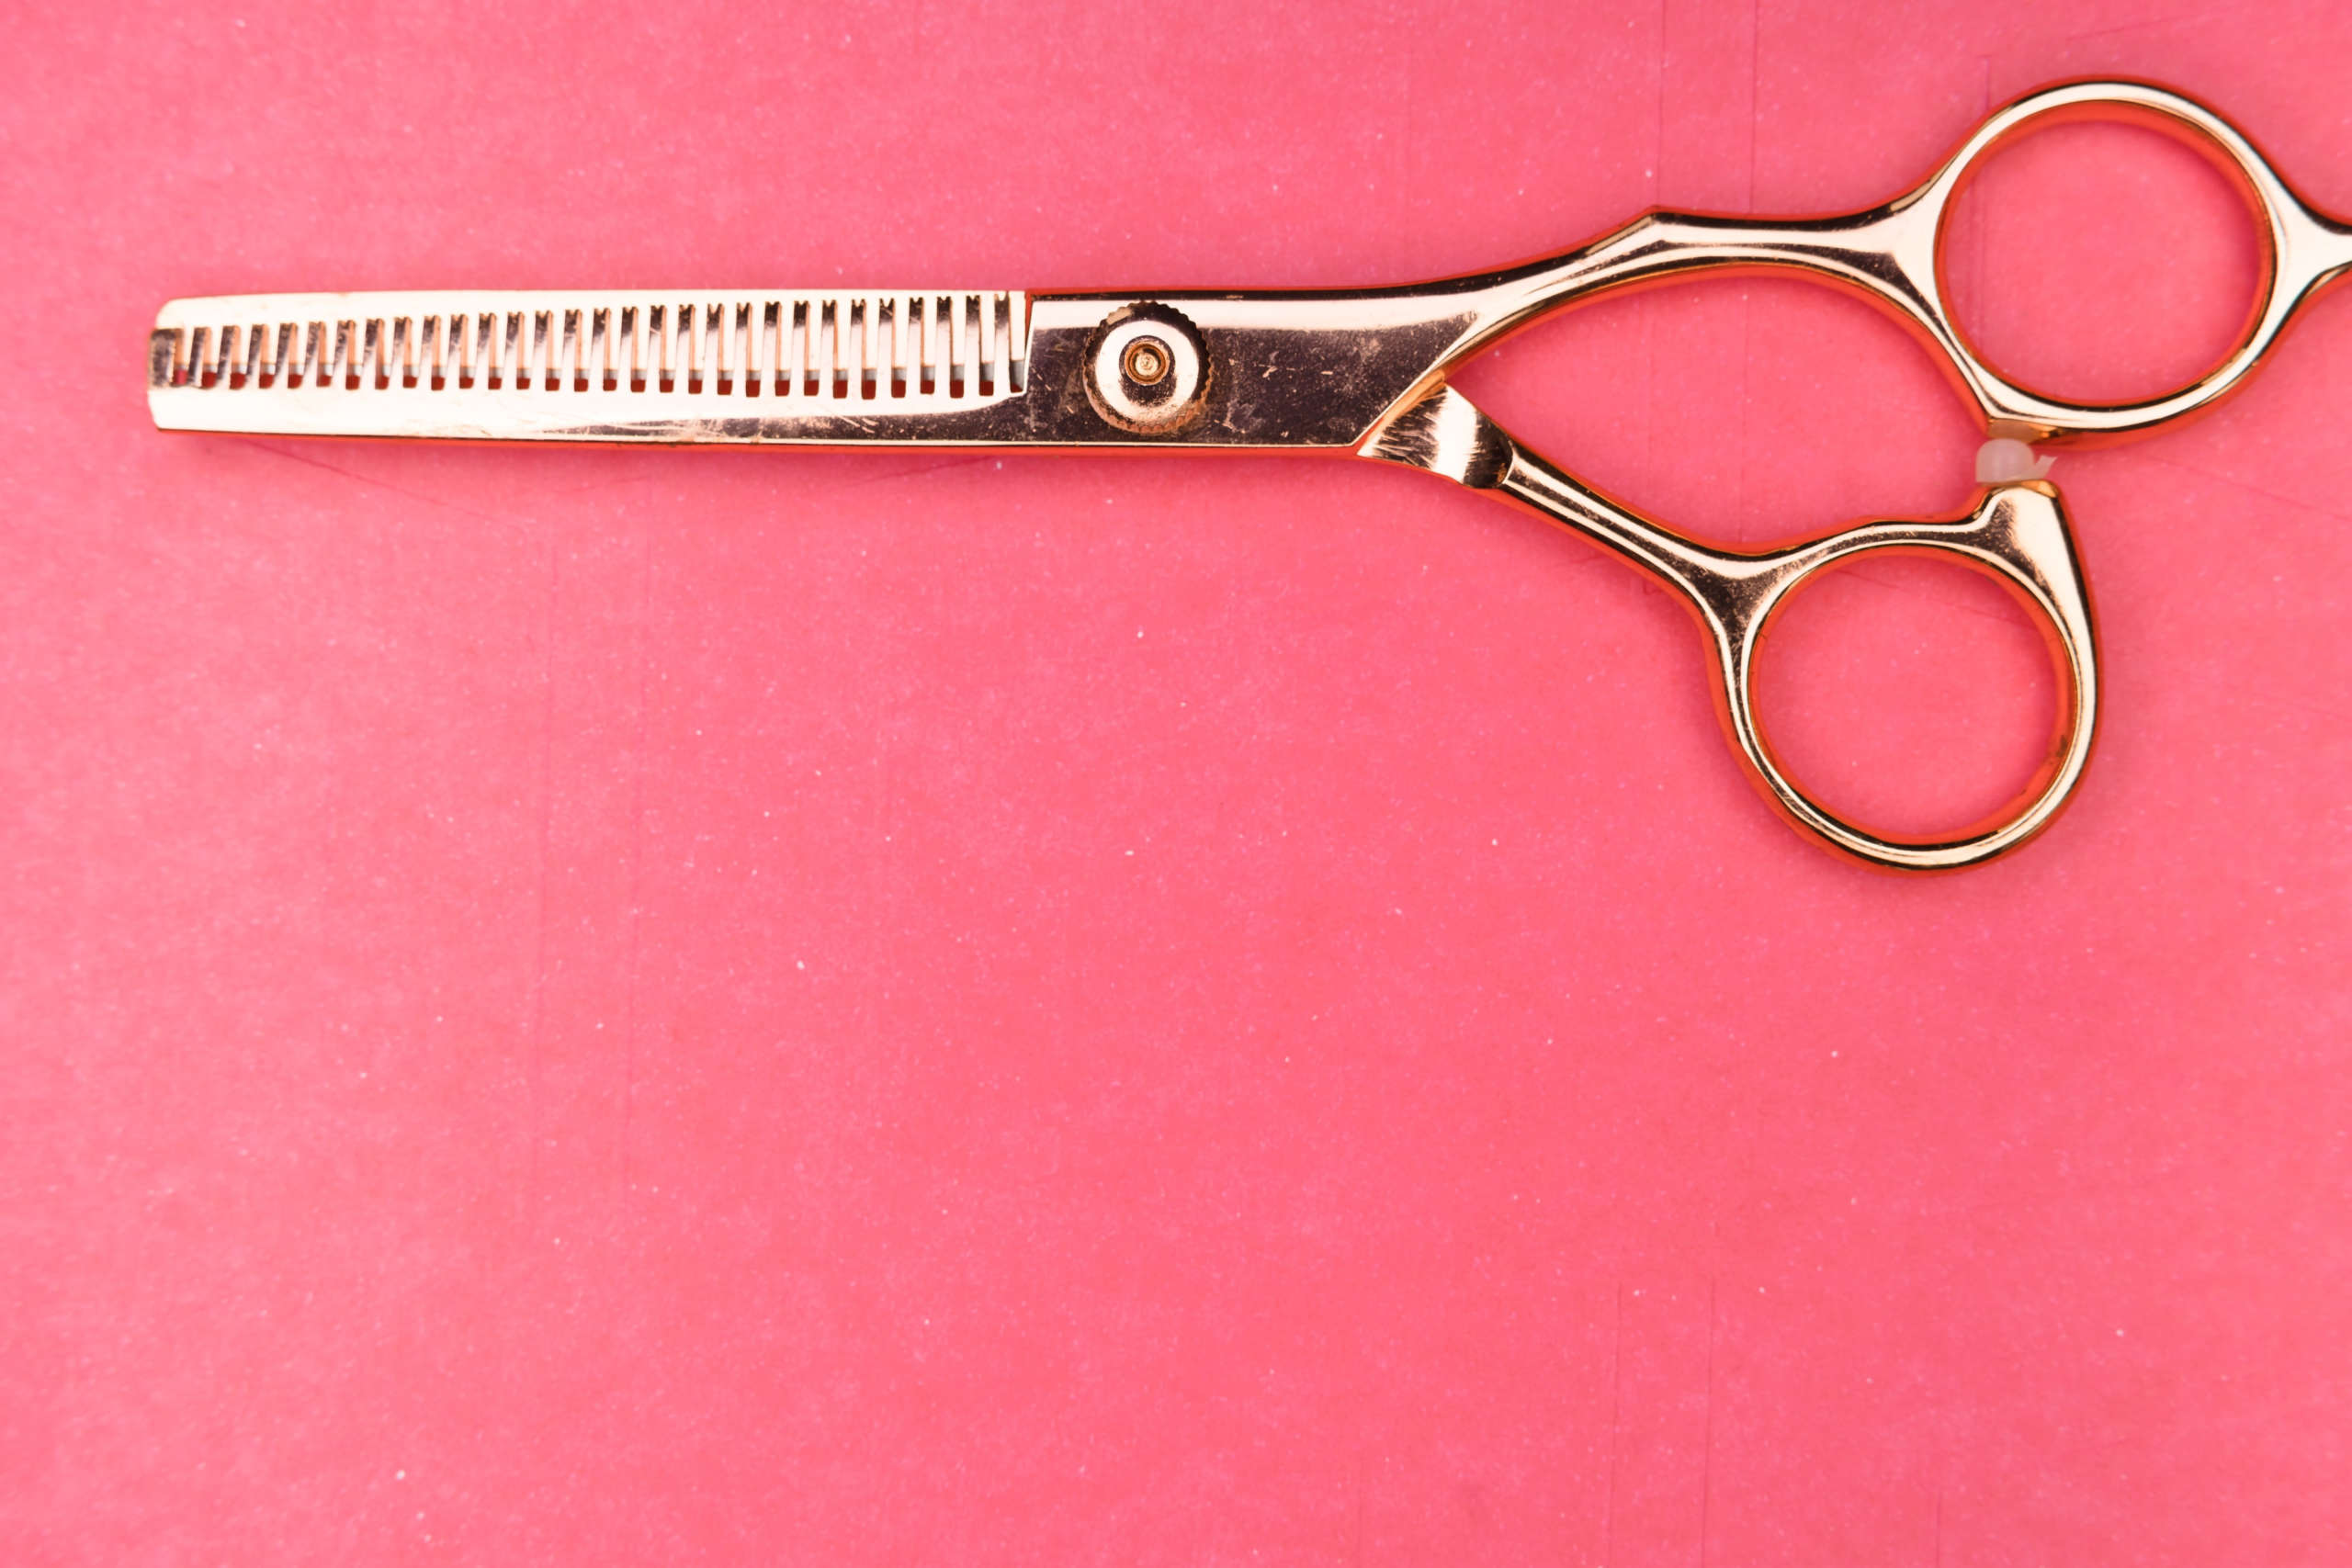 Haircuts at Home: The Ultimate Guide to Choosing the Right Scissors